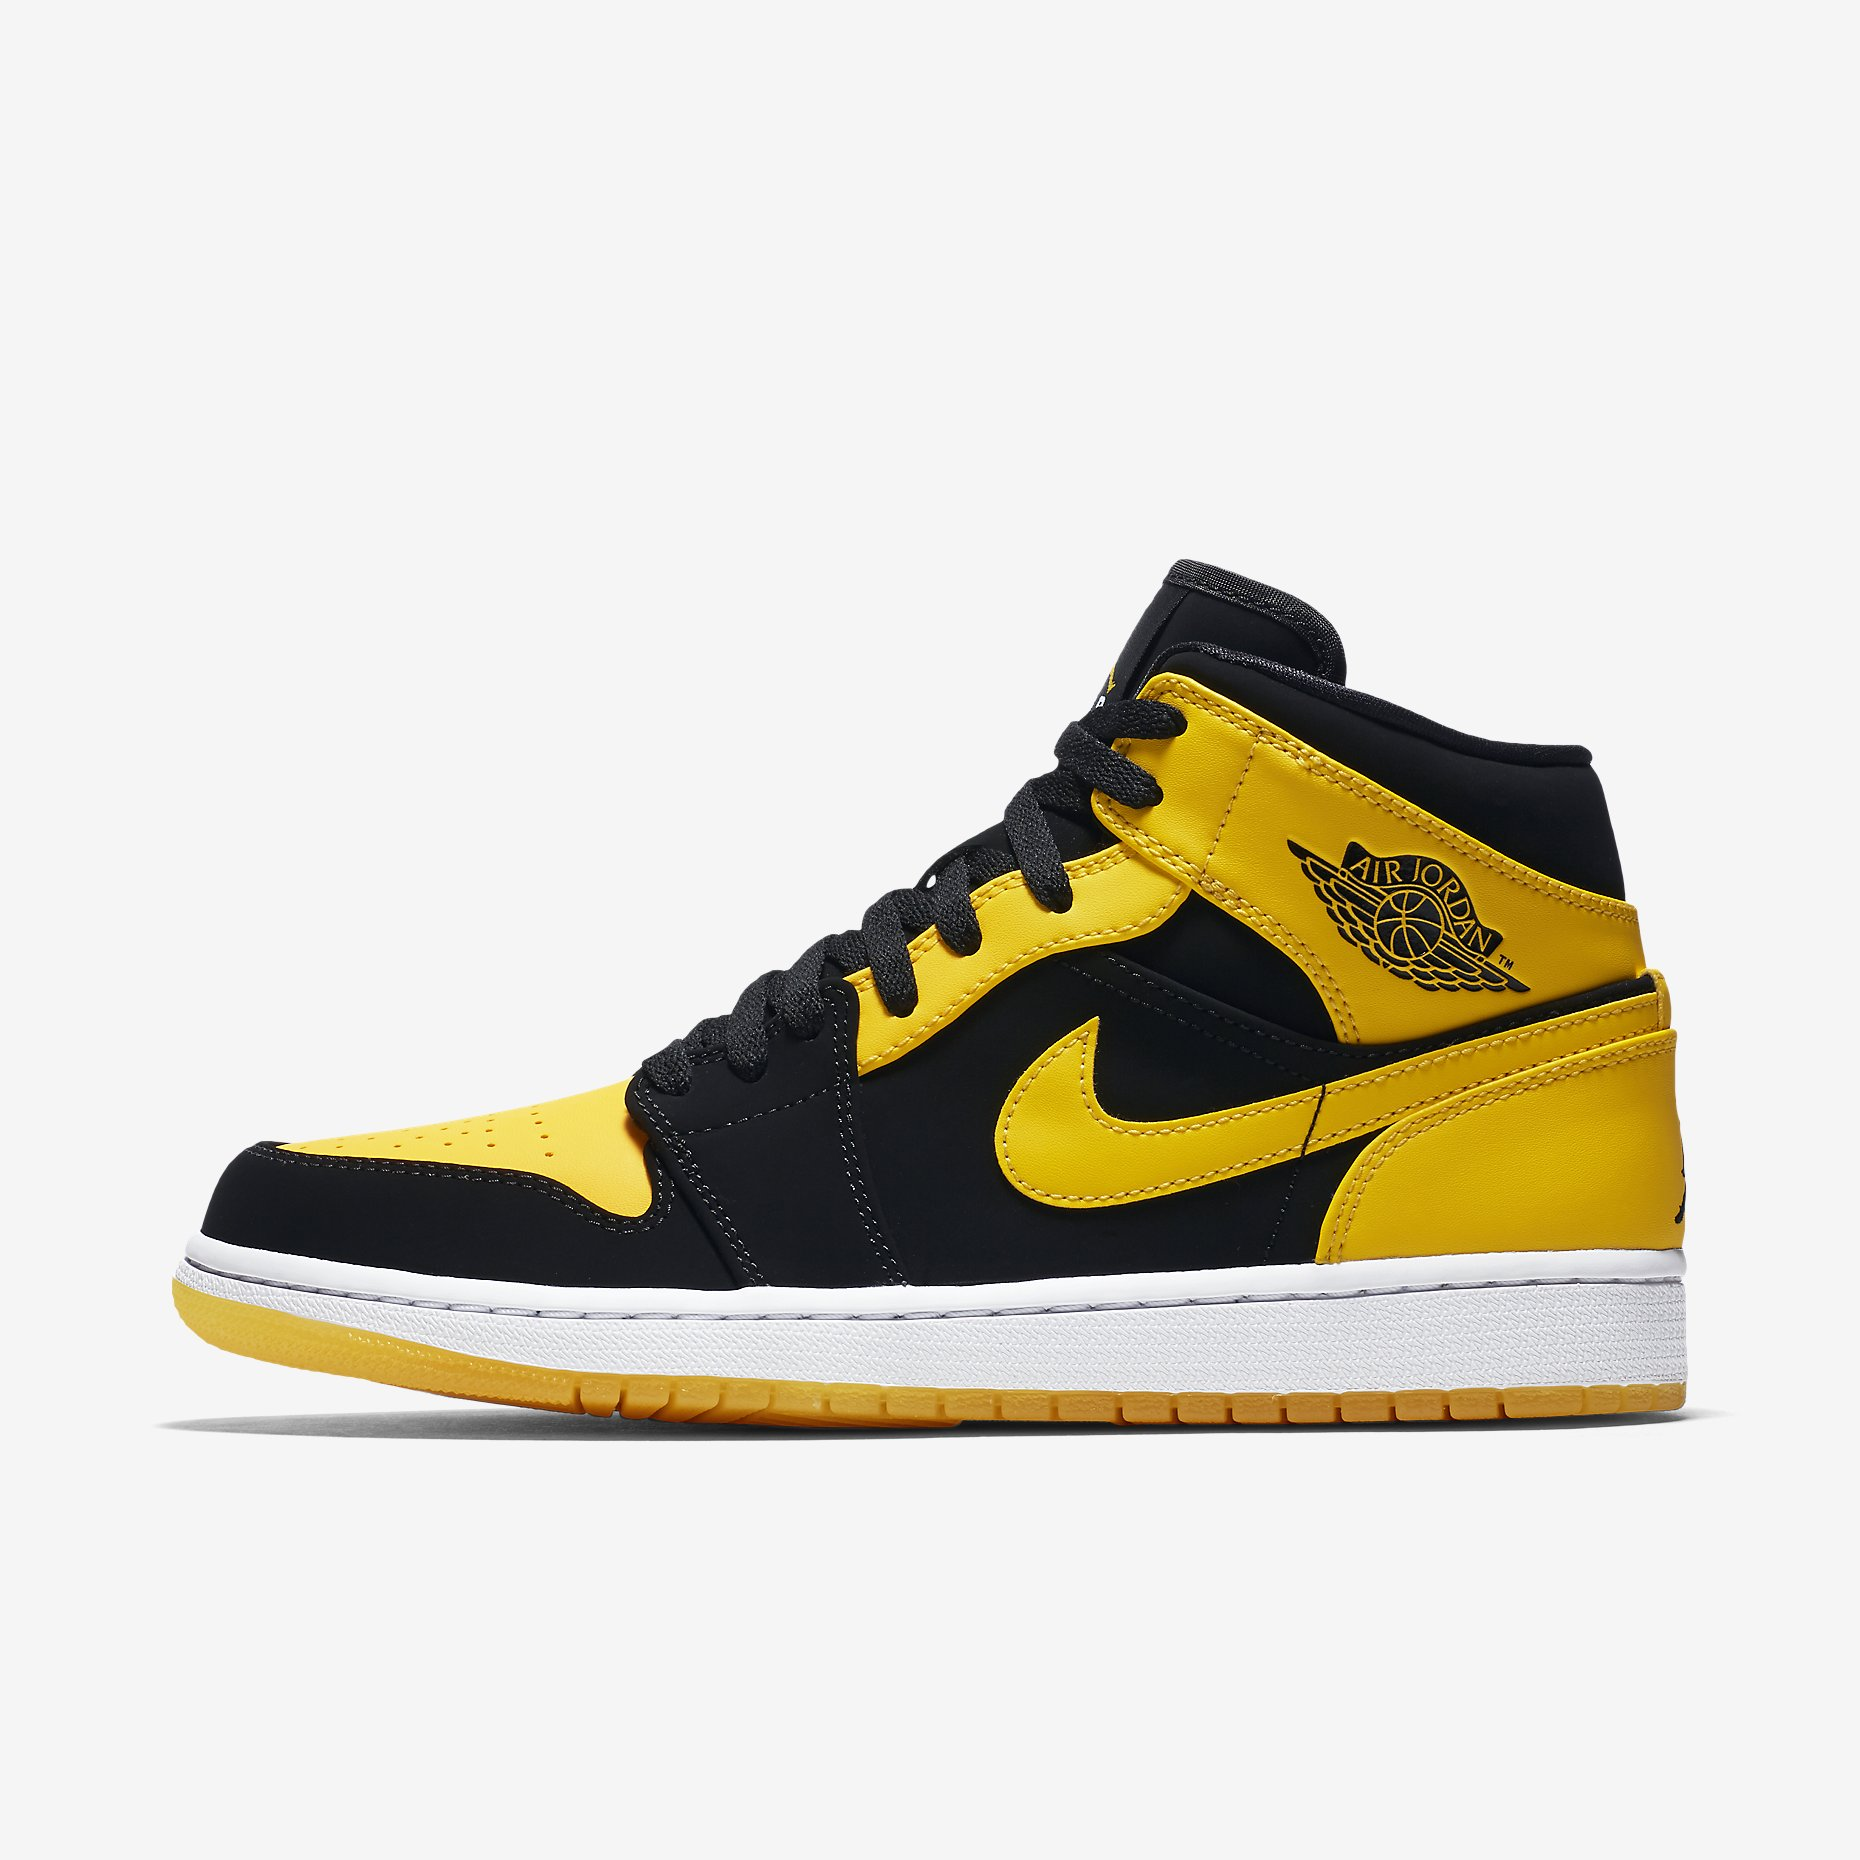 low cost innovative design official Nike Air Jordan 1 Mid Schwarz / Gelb, Herren – NewKicks